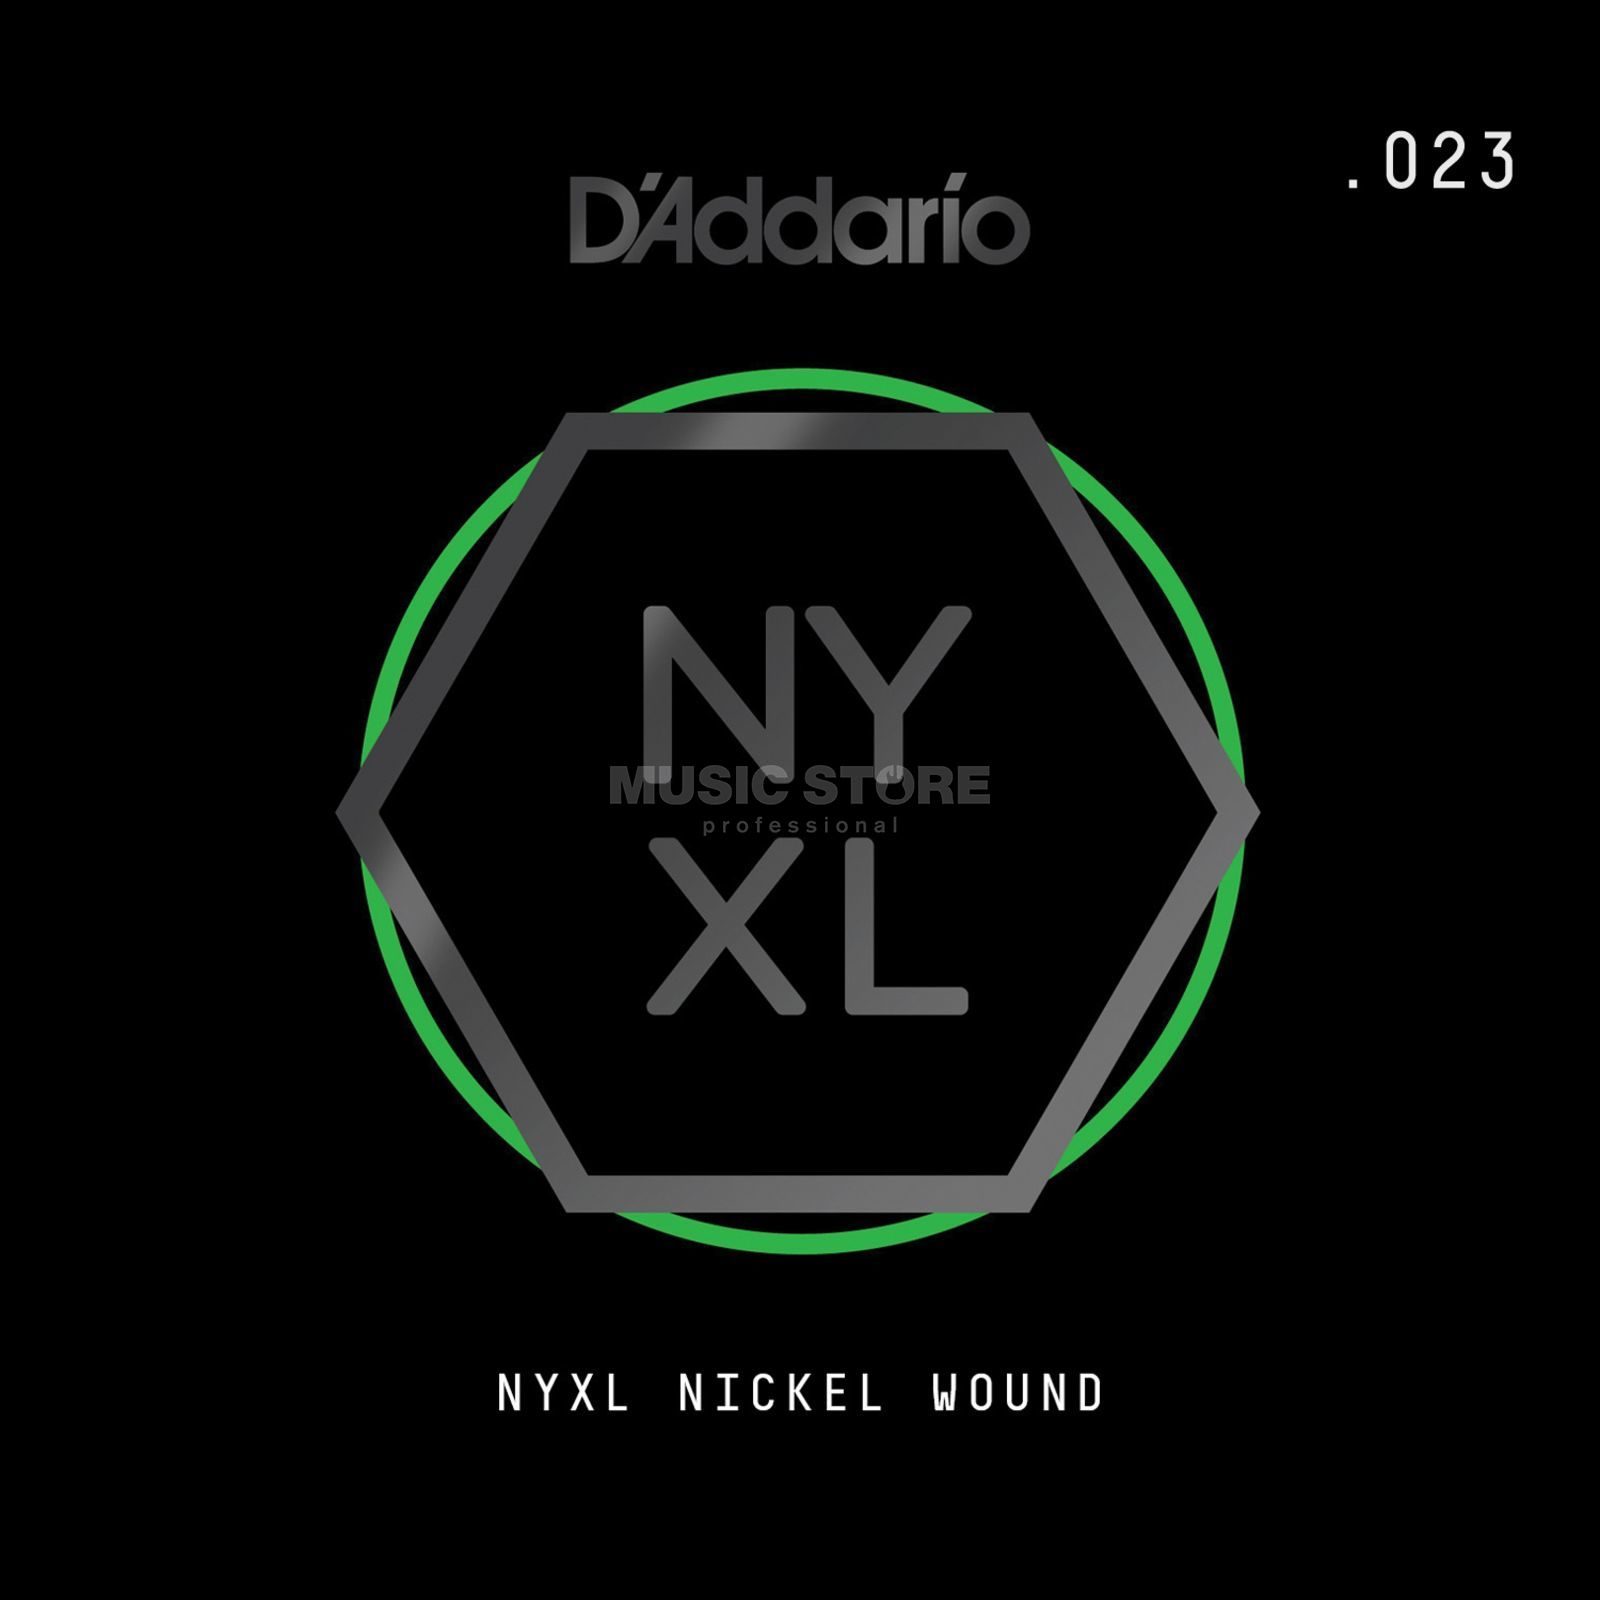 D'Addario NYNW023 Single String Nickel Wound Image du produit